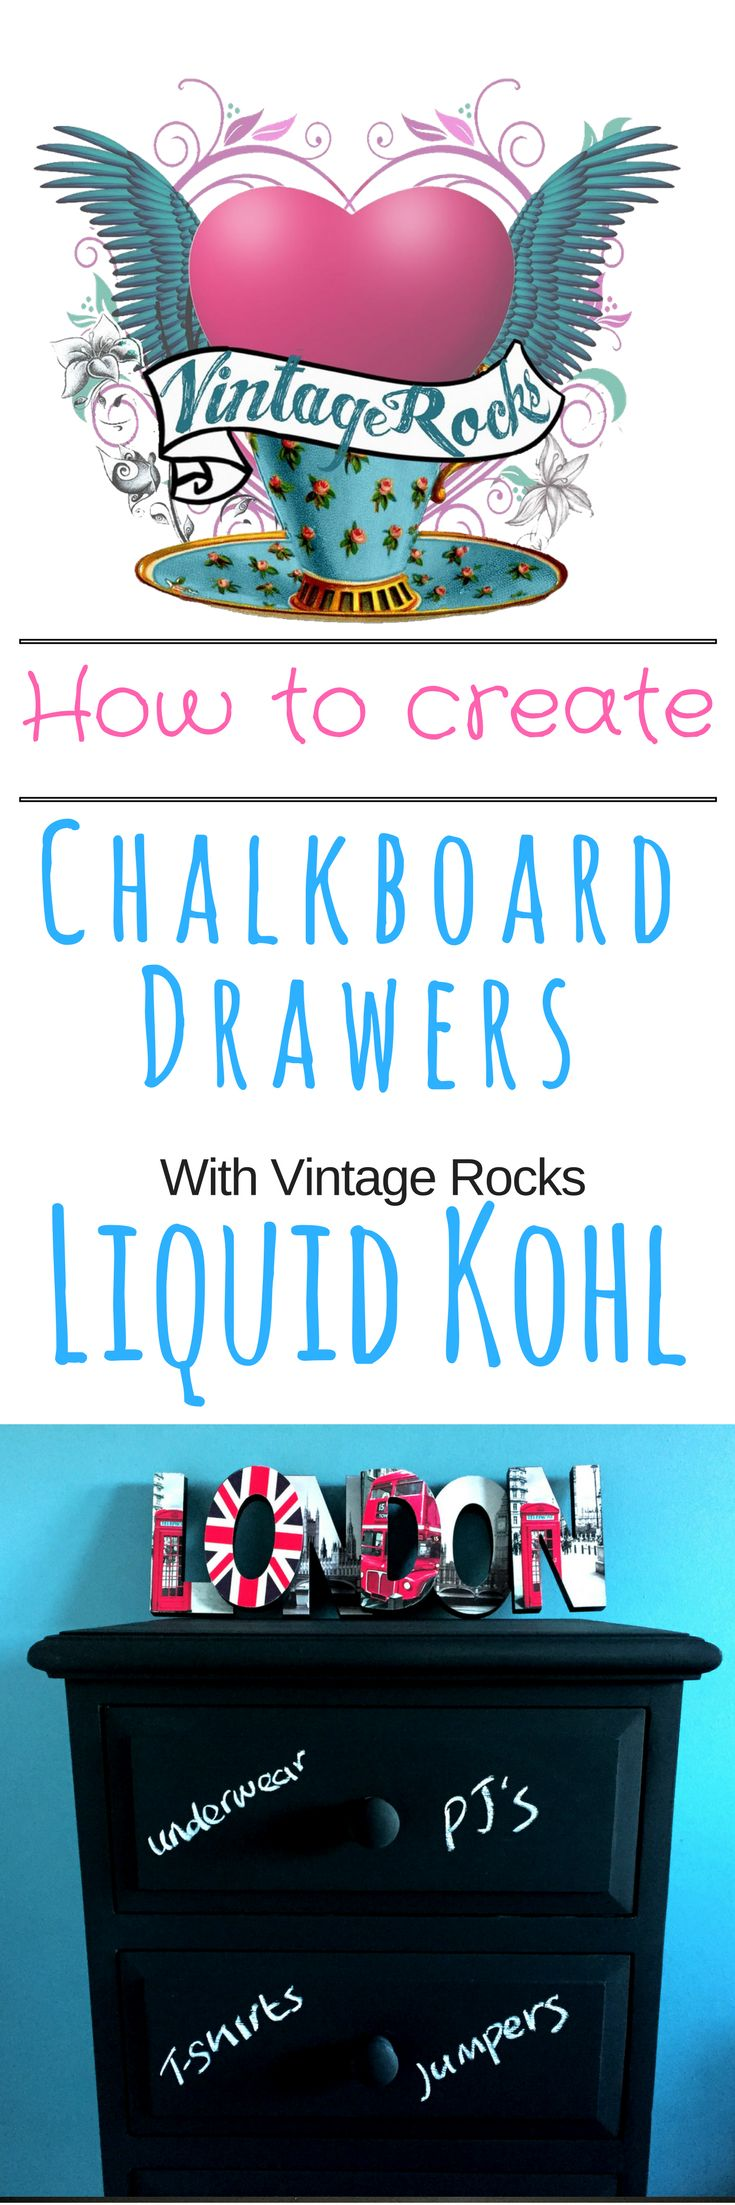 How to create blackboard furniture without sanding or priming with Vintage Rocks Liquid Kohl chalky matt furniture paint.  Label drawers, scribble on tables or walls.